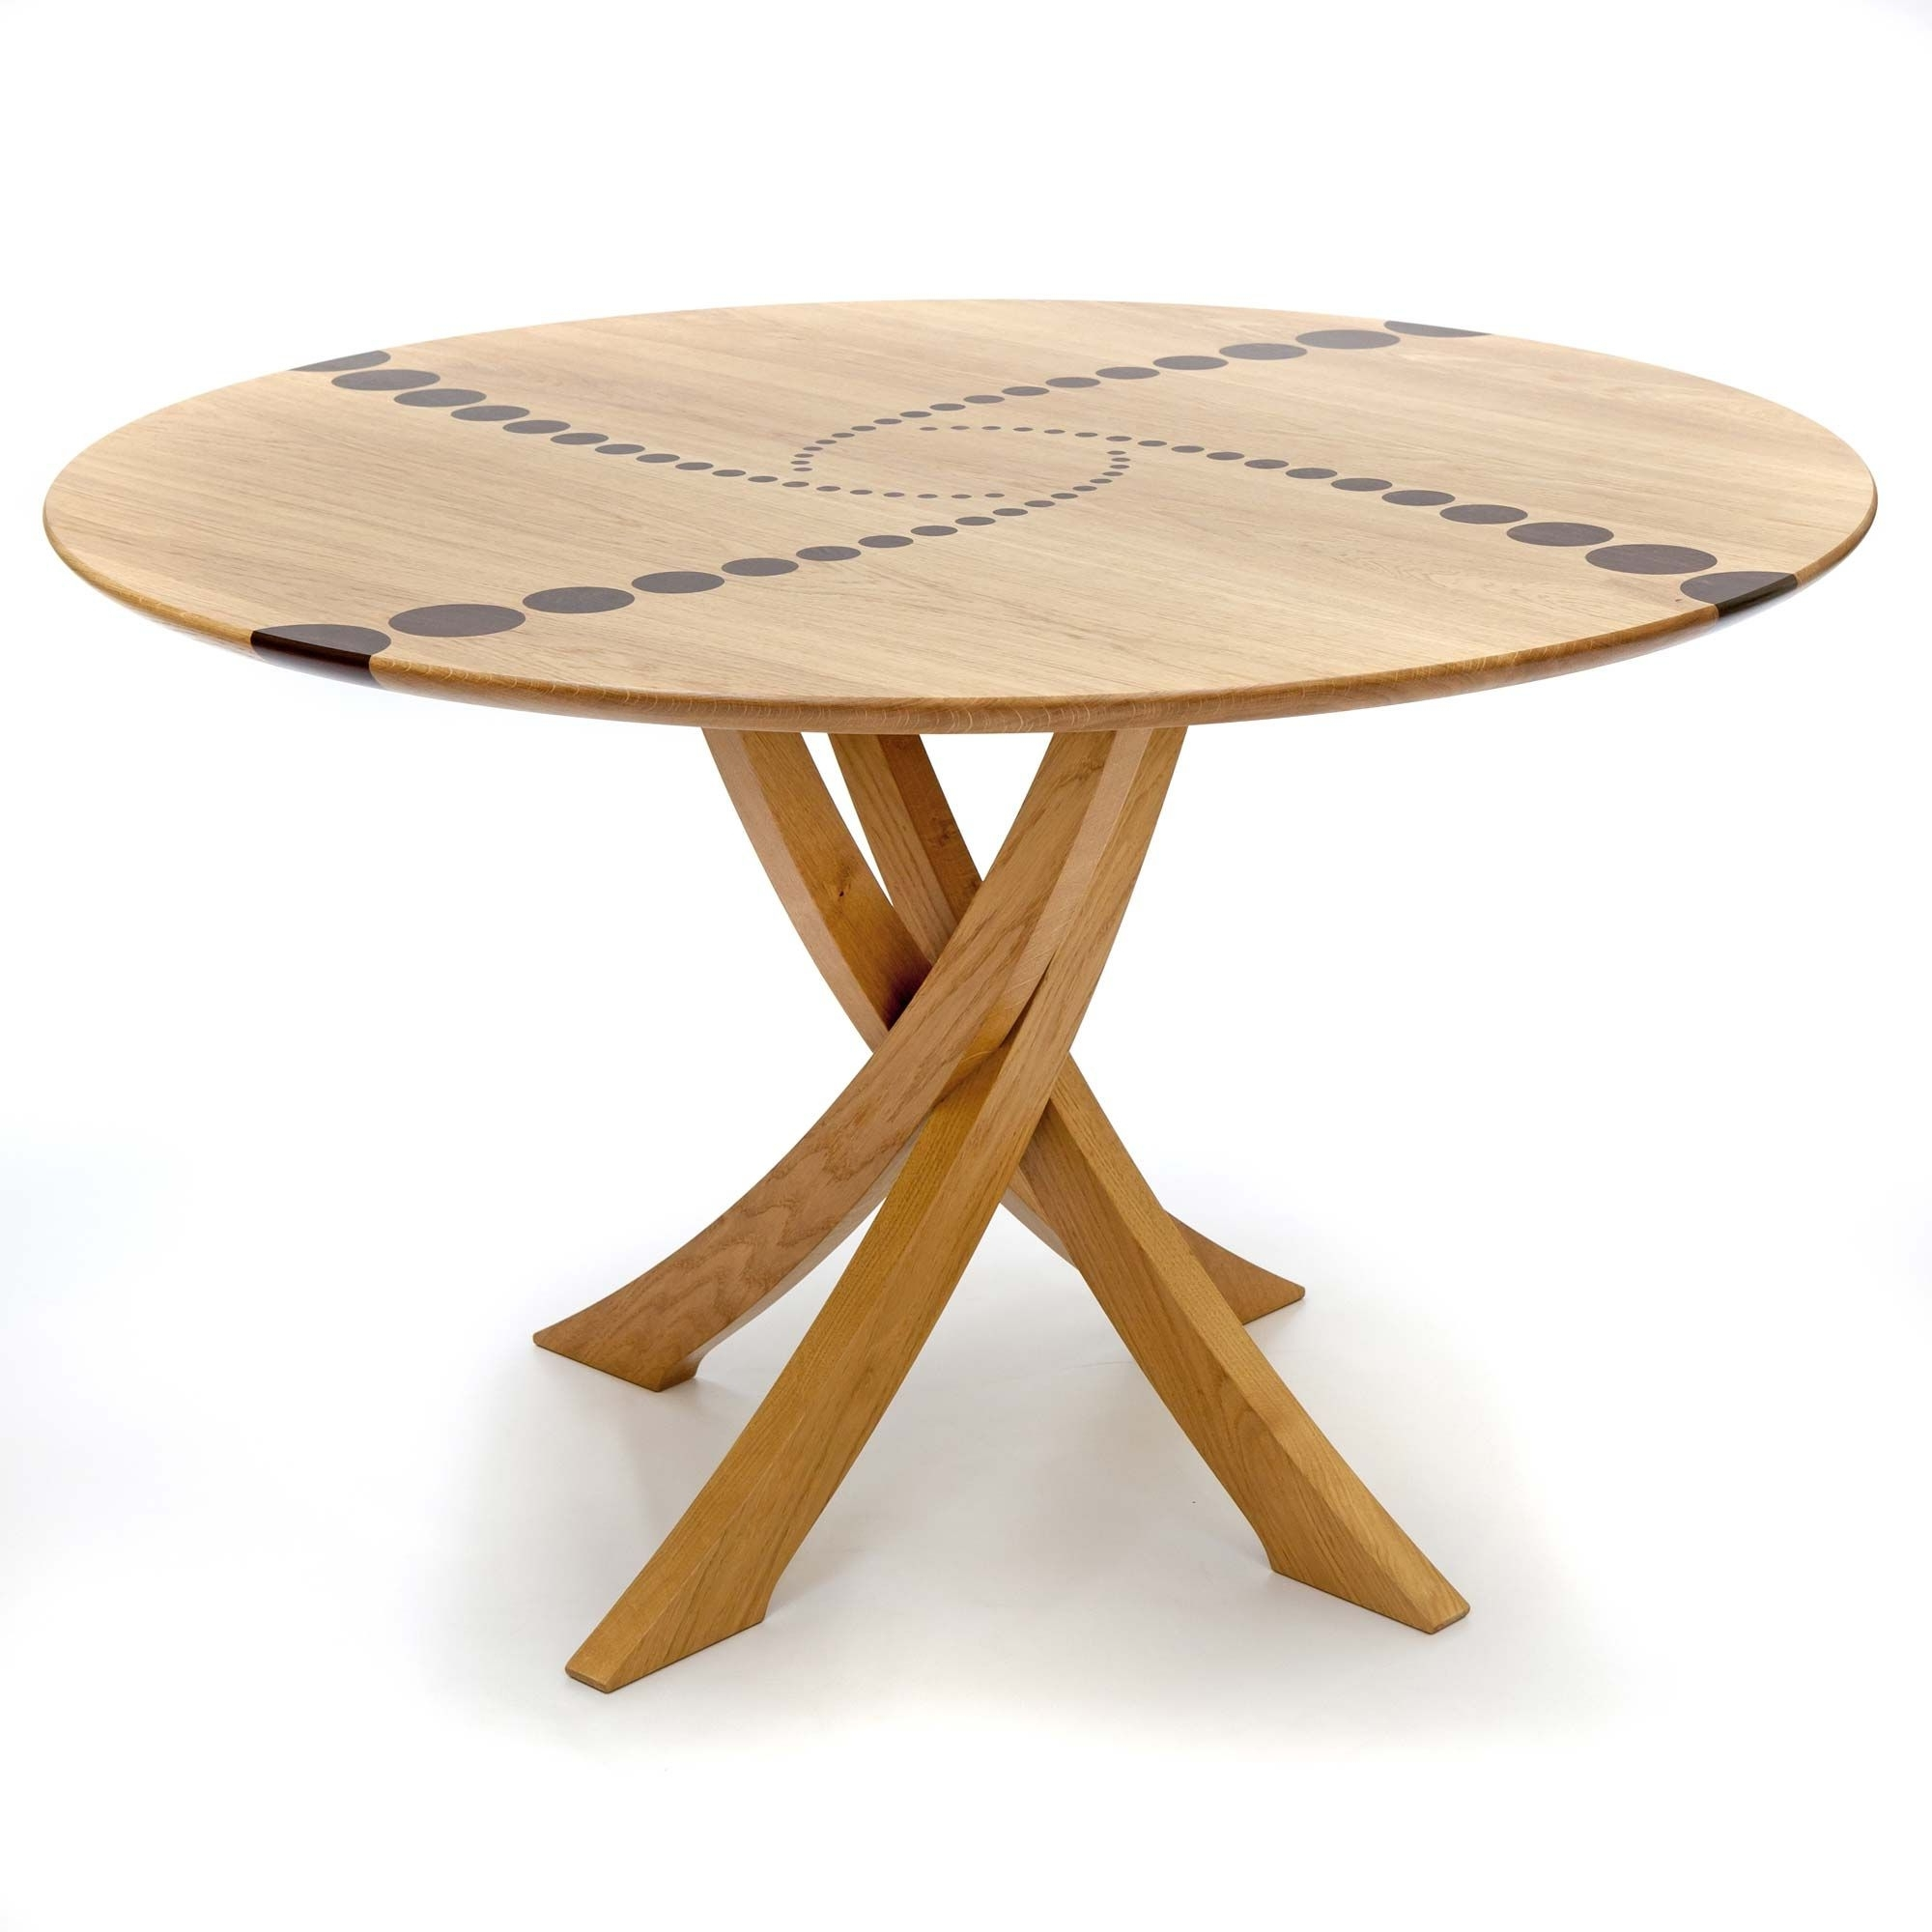 Wood Desk And Within 2017 Large Circular Dining Tables (View 25 of 25)